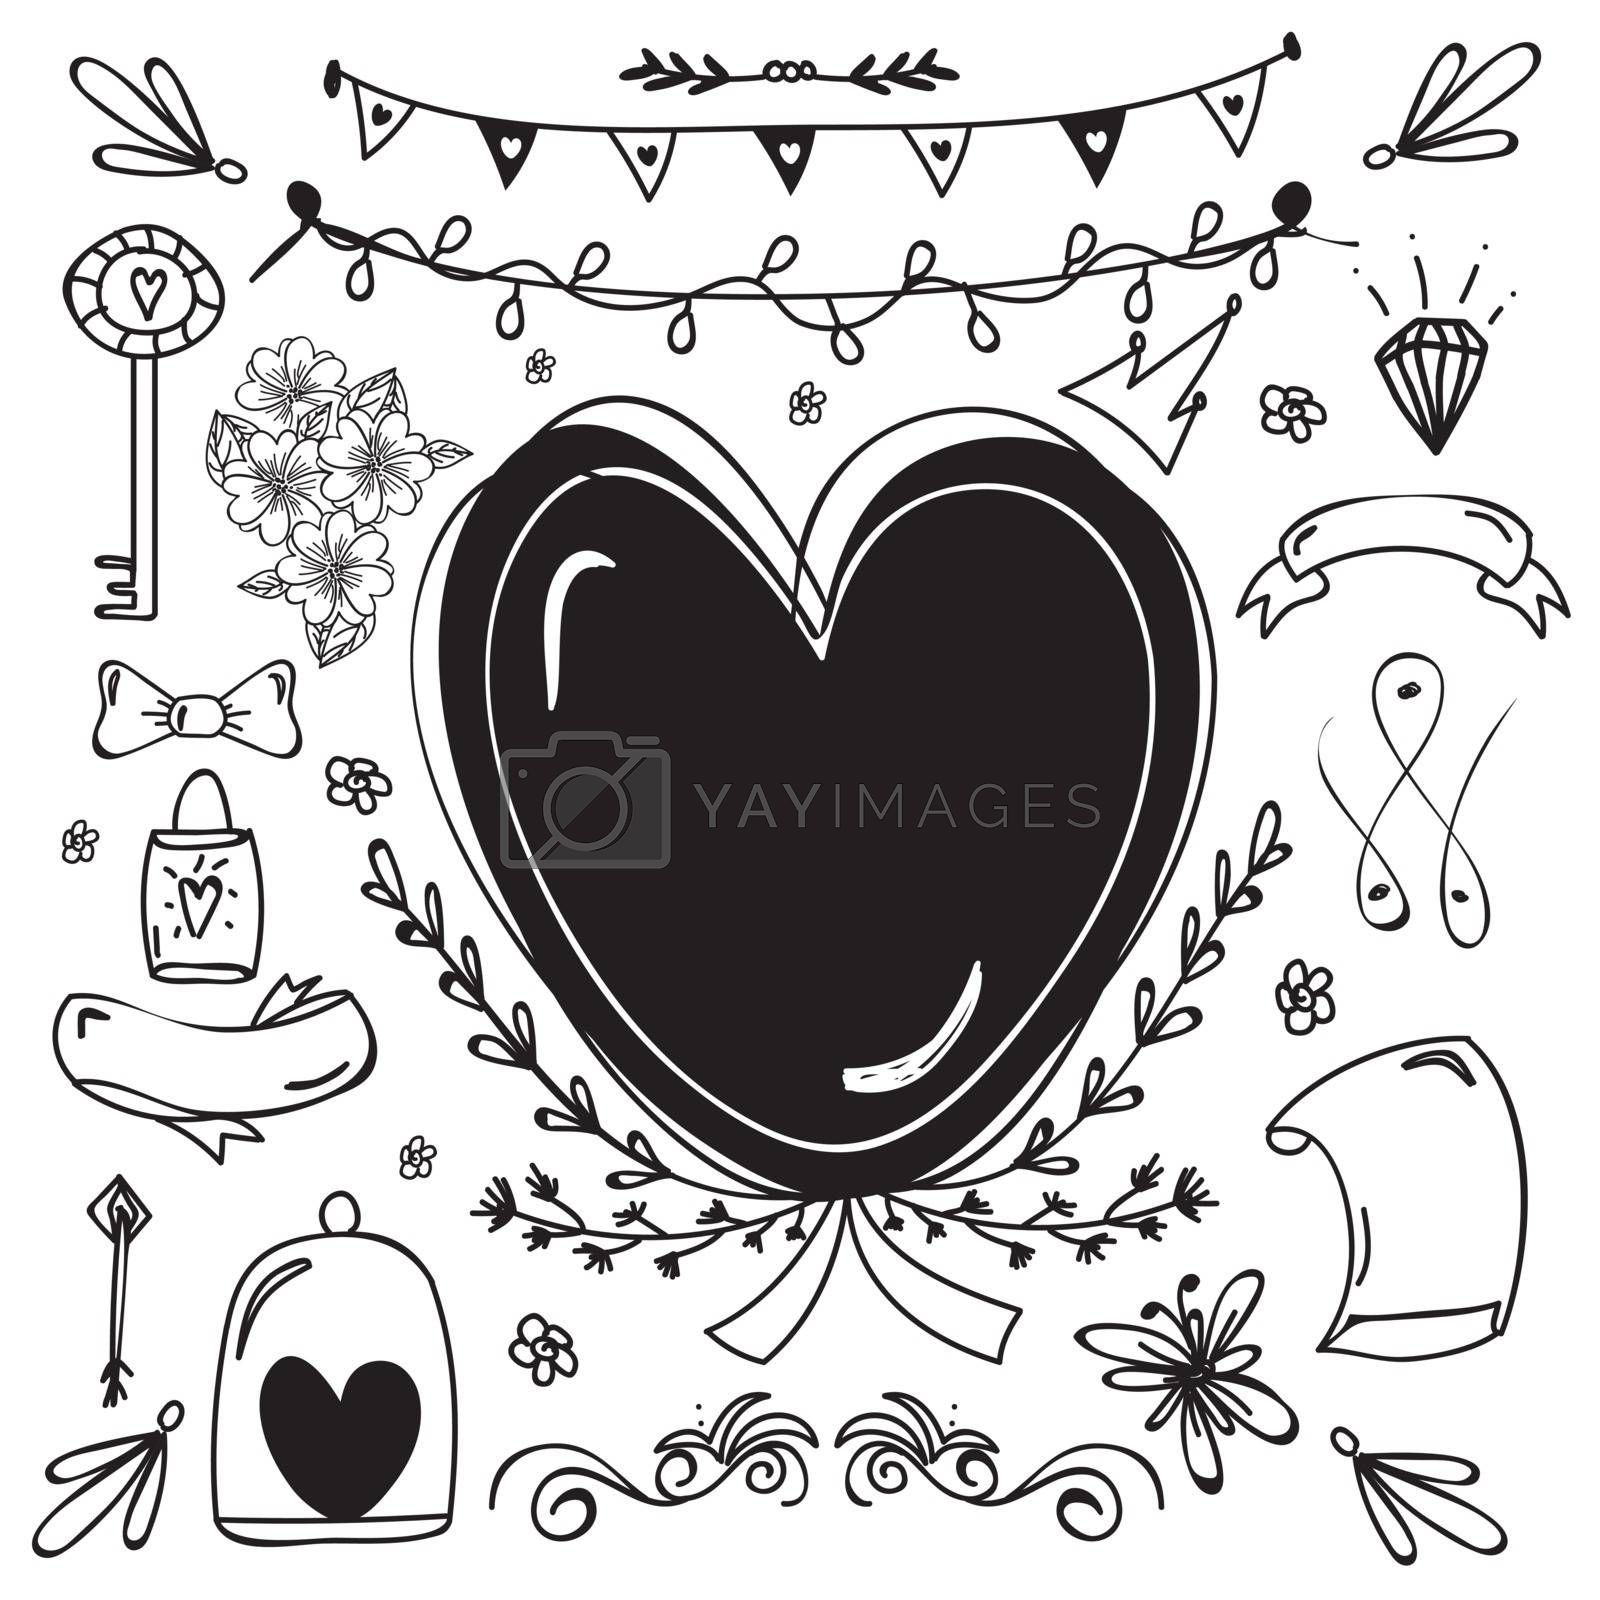 Black and white hand drawn doodle elements collection for Love concept.